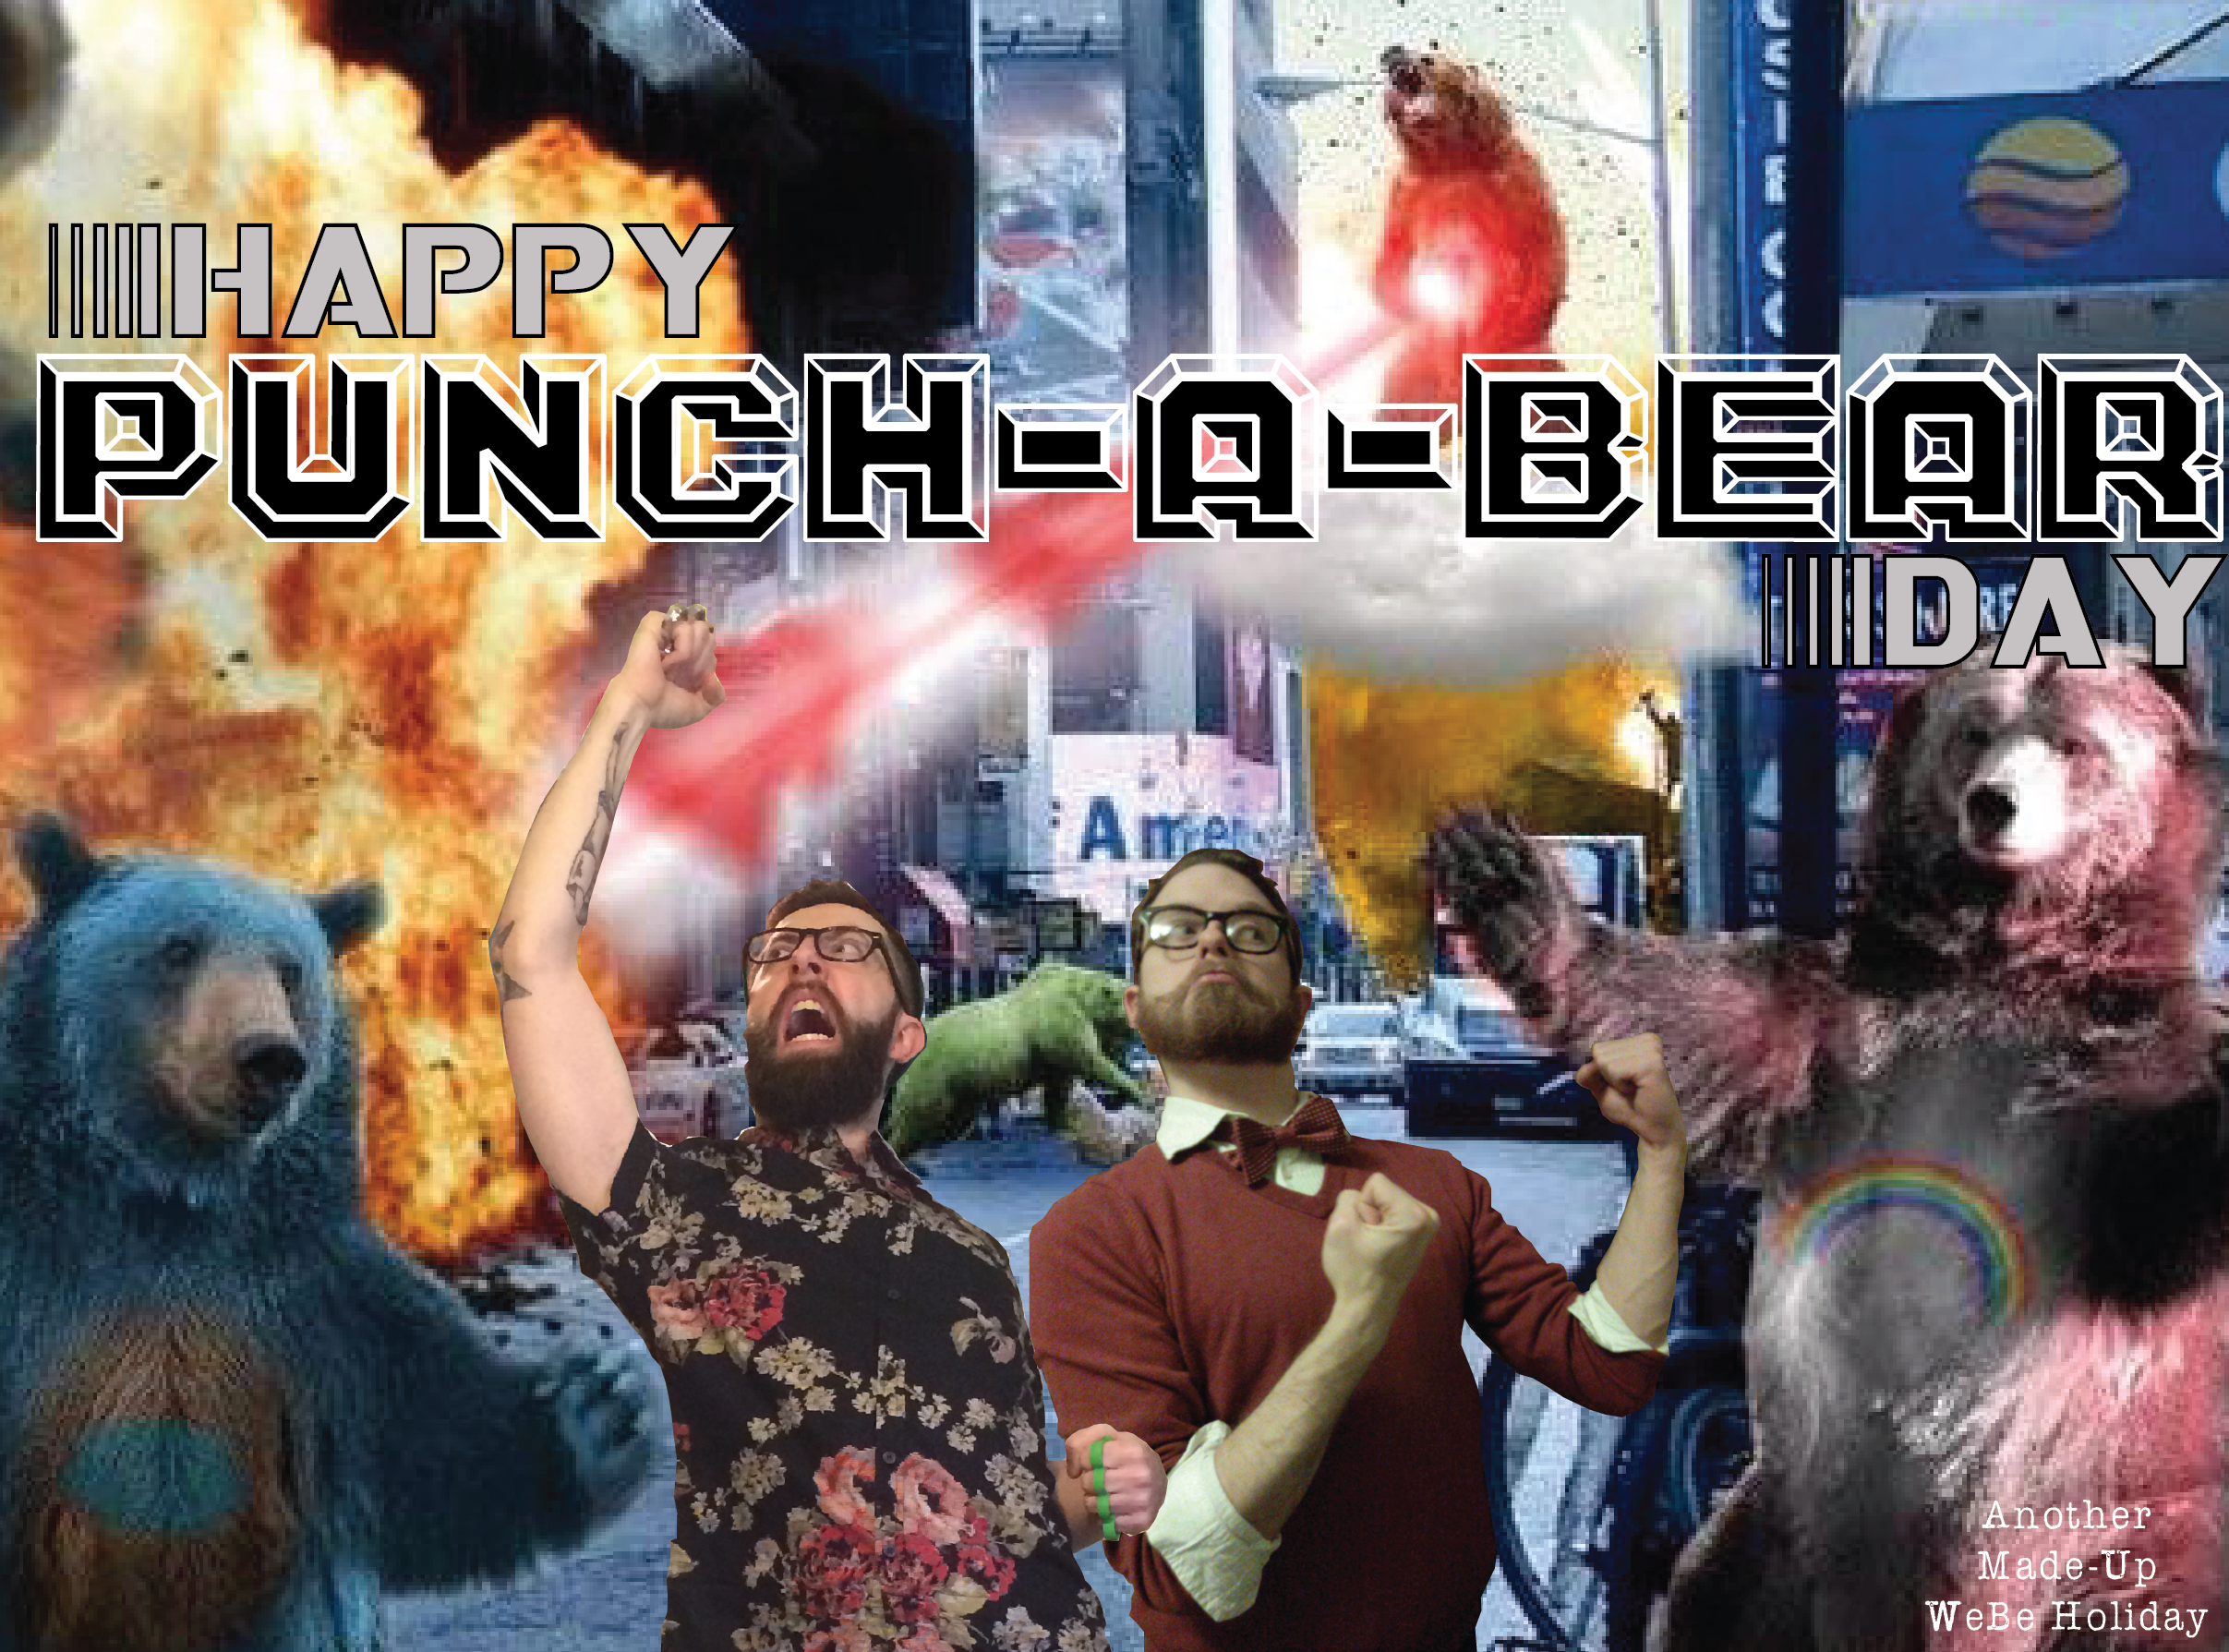 Punch-a-Bear Day 2013 - WeBe 02.png